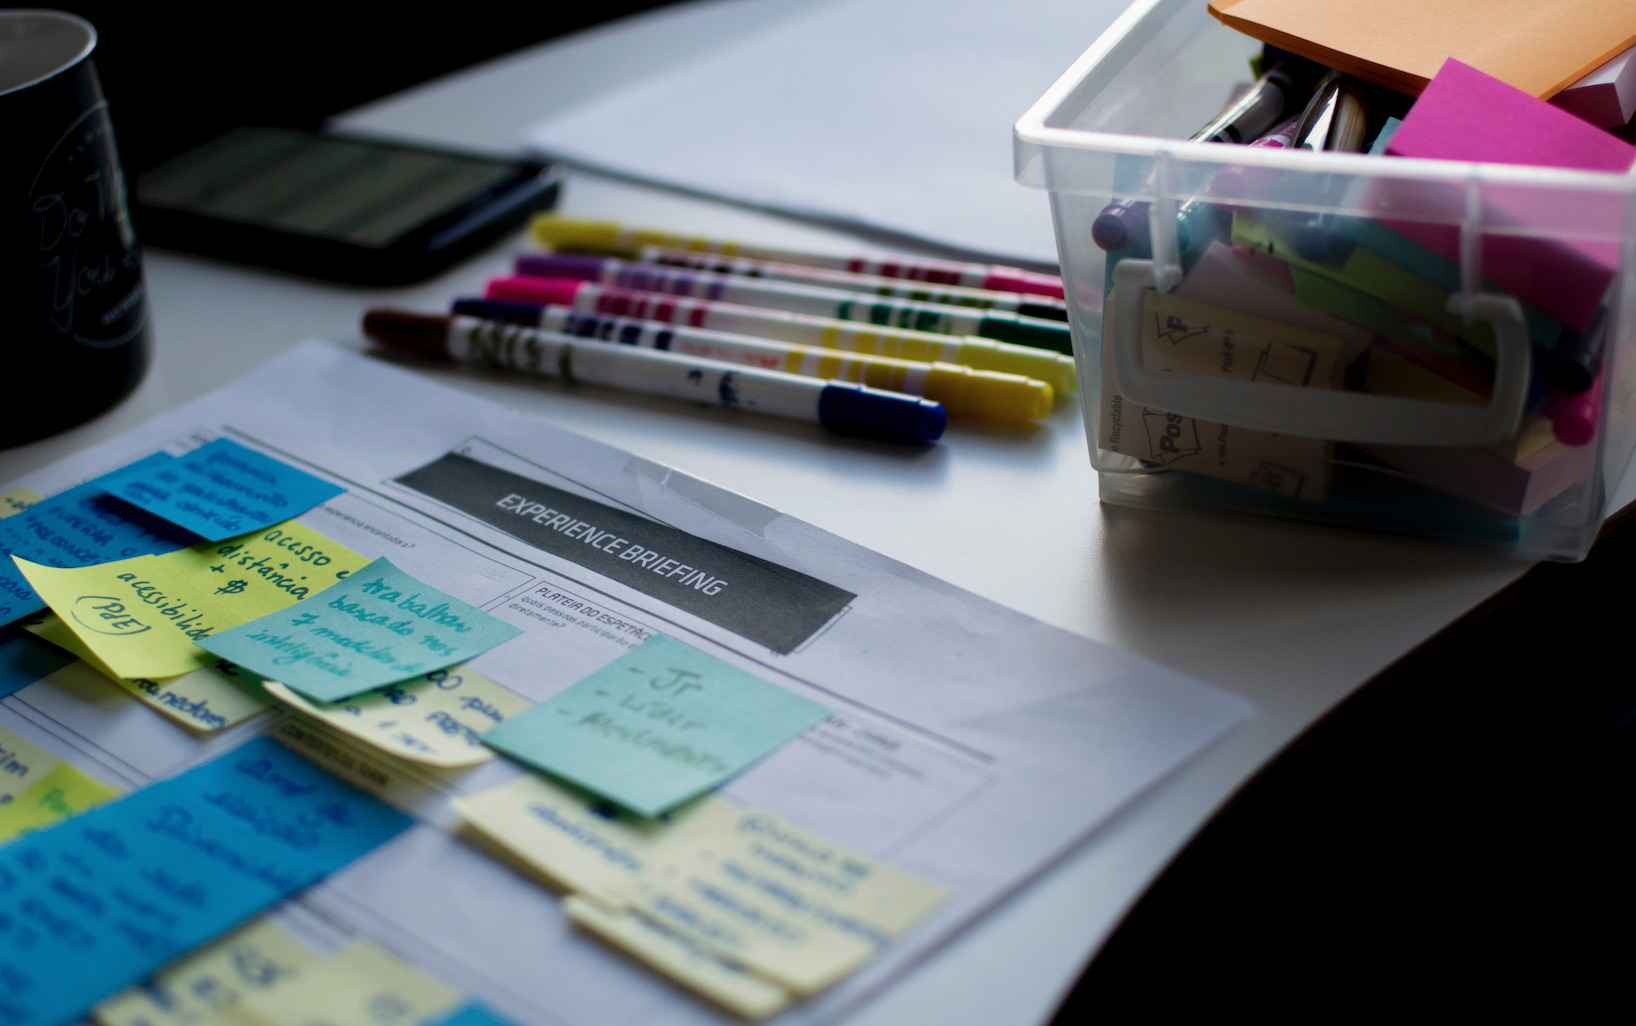 10 Design Thinking-inspired Behaviors That Make Your Everyday Work Better